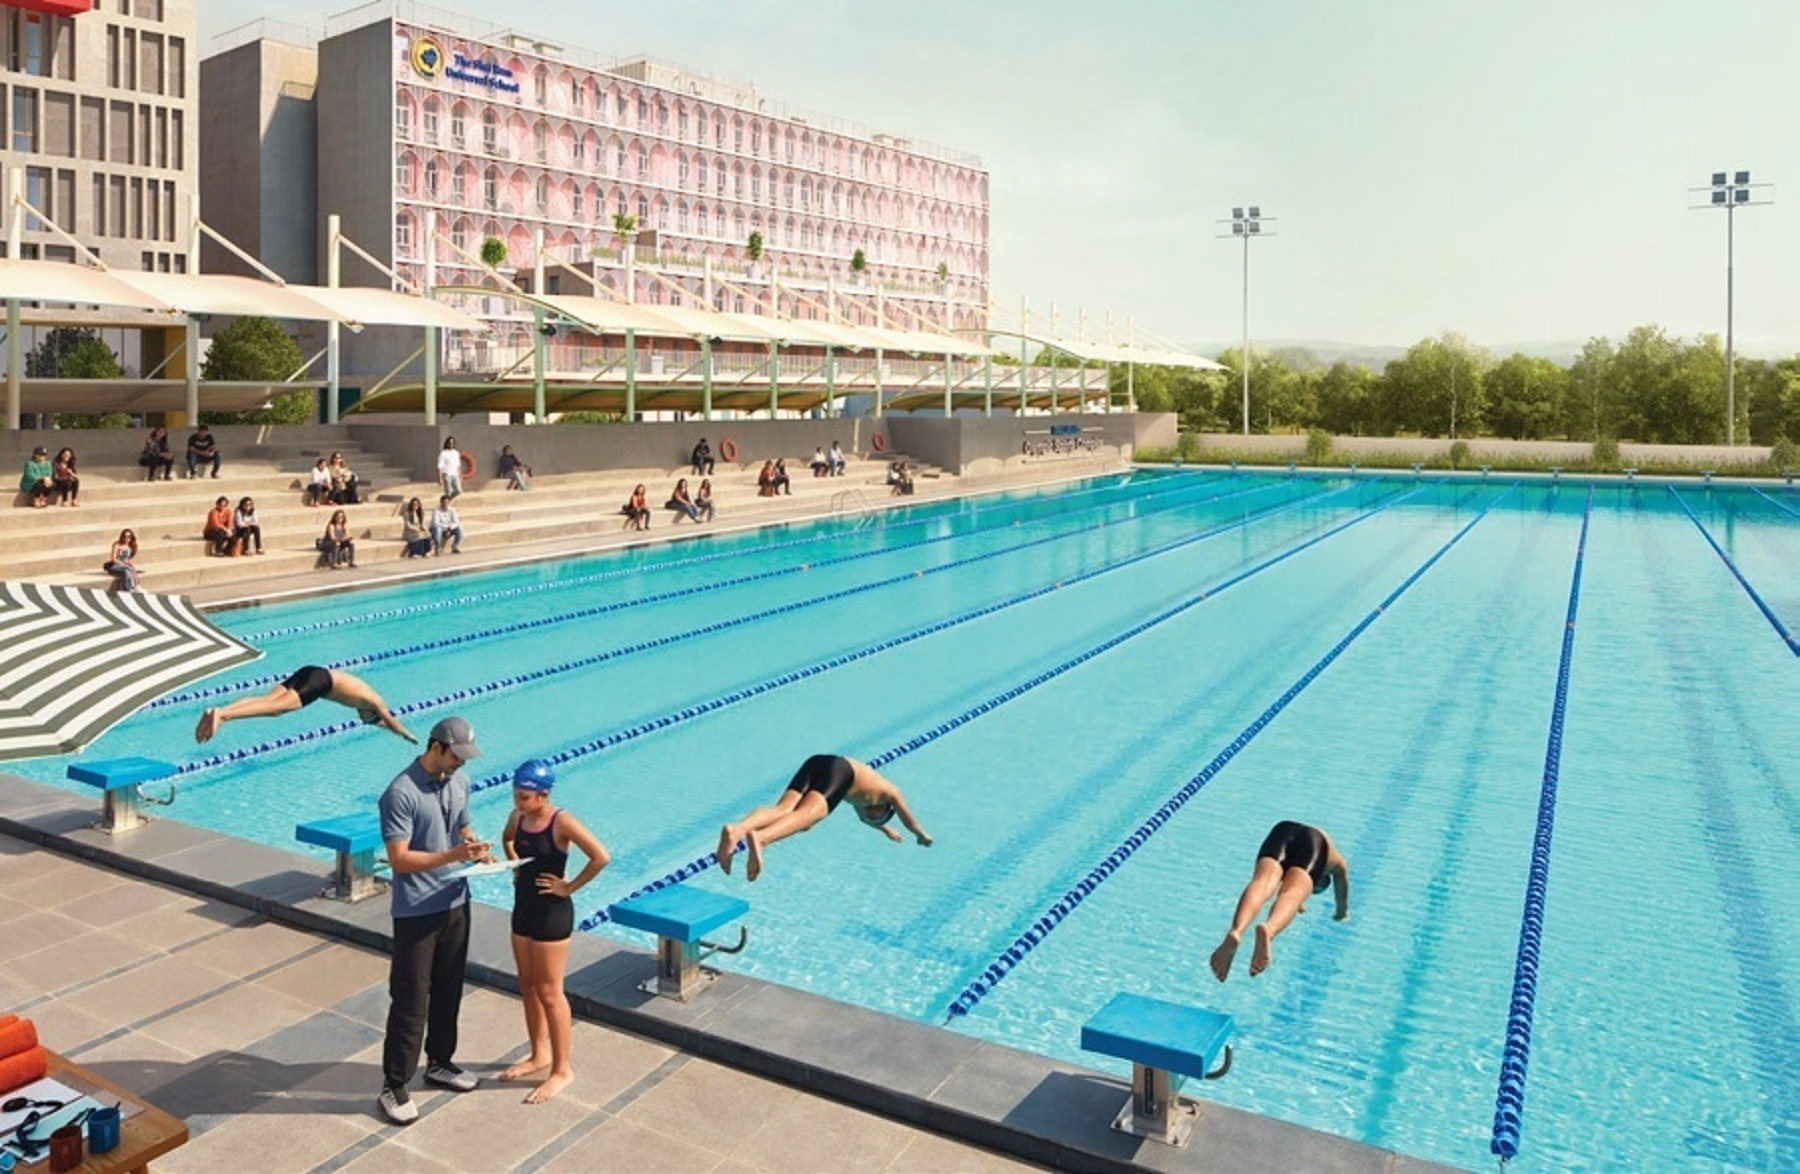 lodha palava aquaville series aurora a and d project amenities features11